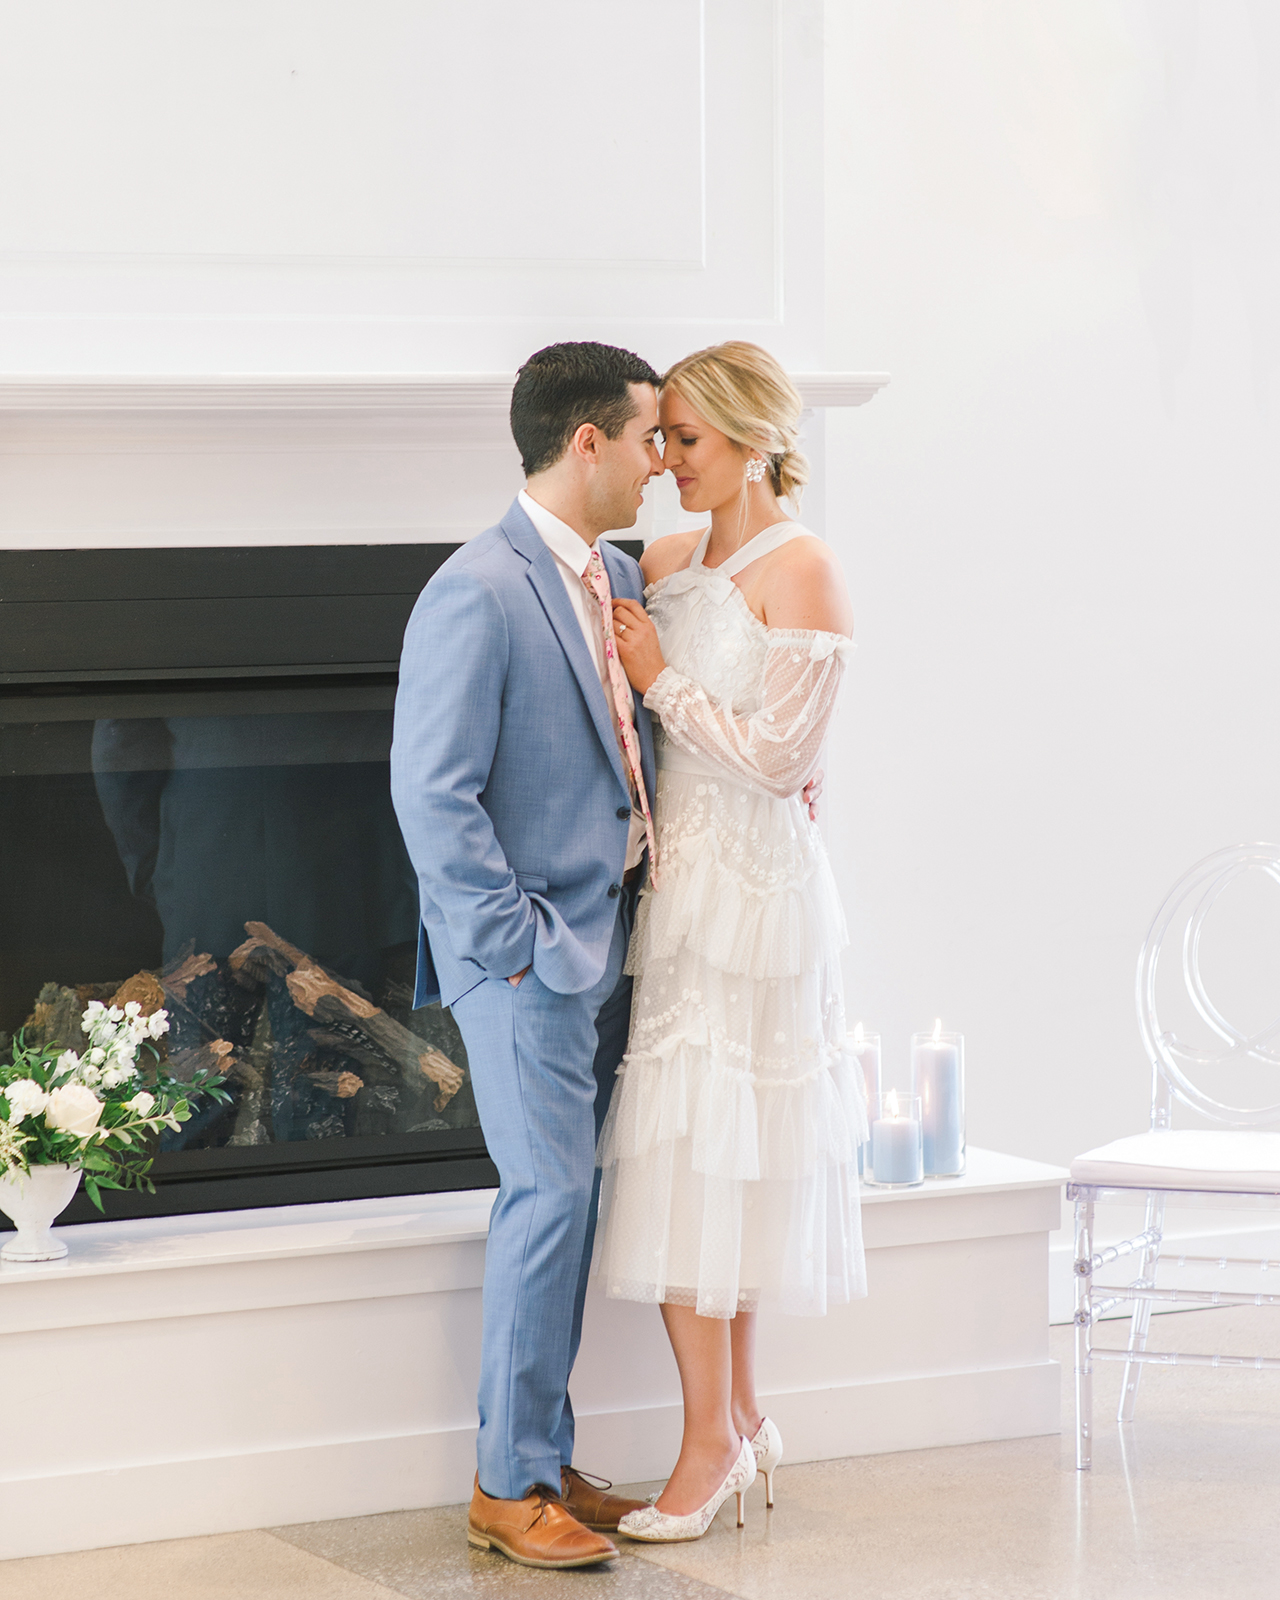 bride groom bridal shower attire fireplace setting